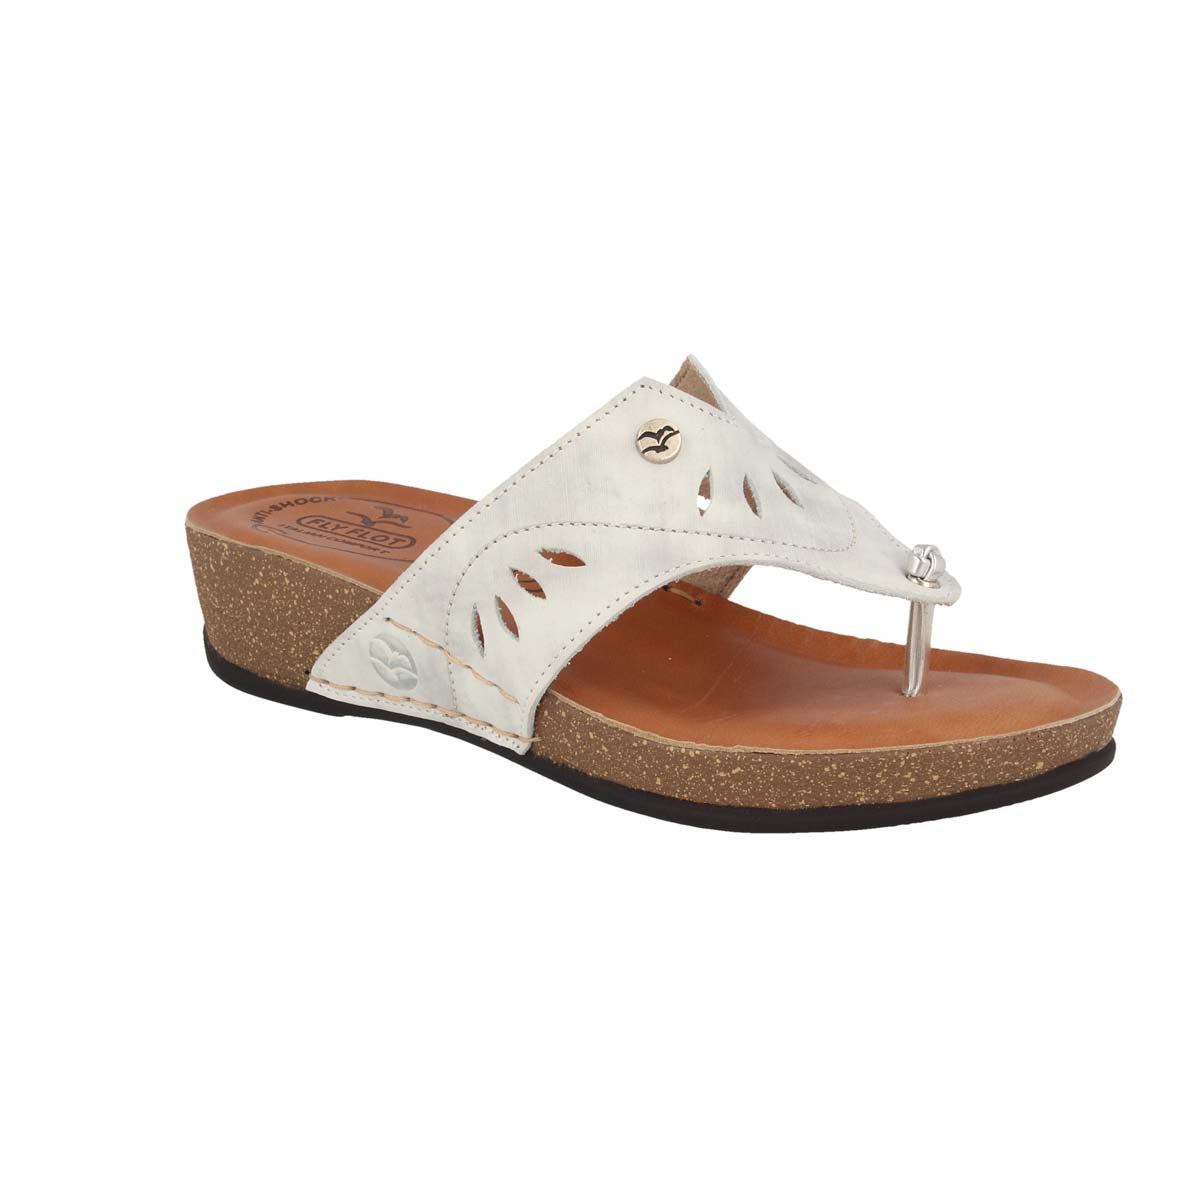 See photos Leather Woman Slipper White (23137PG)